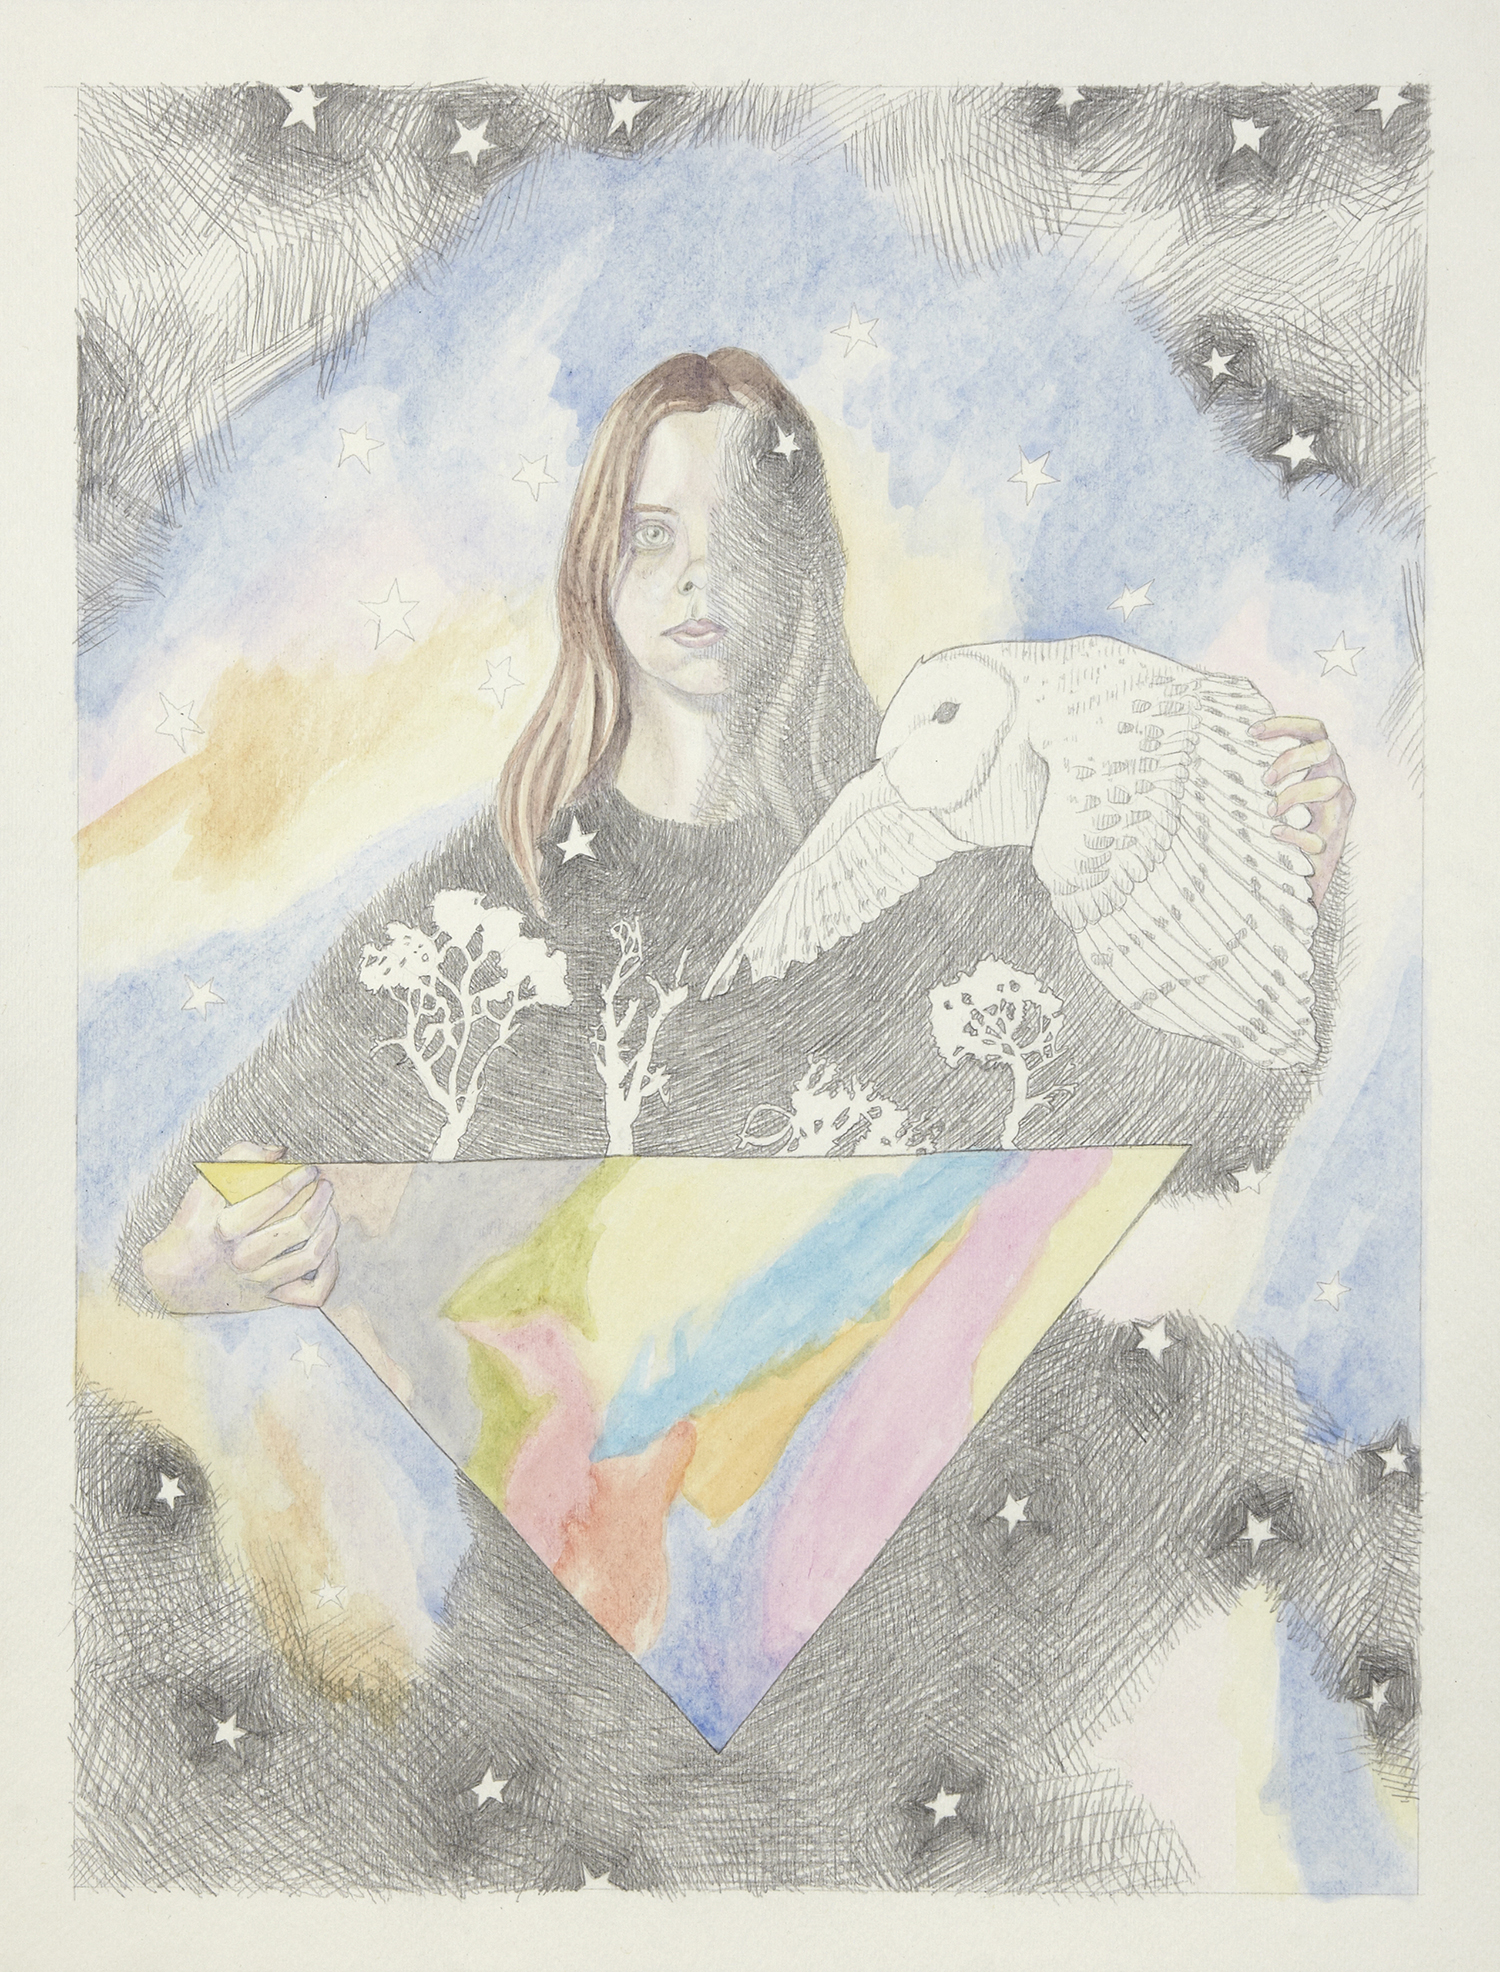 Triangle and Owl #2, 2012, Watercolour and pencil on paper, 30.0 x 40.0 cm, Photo: Sam Scoufos